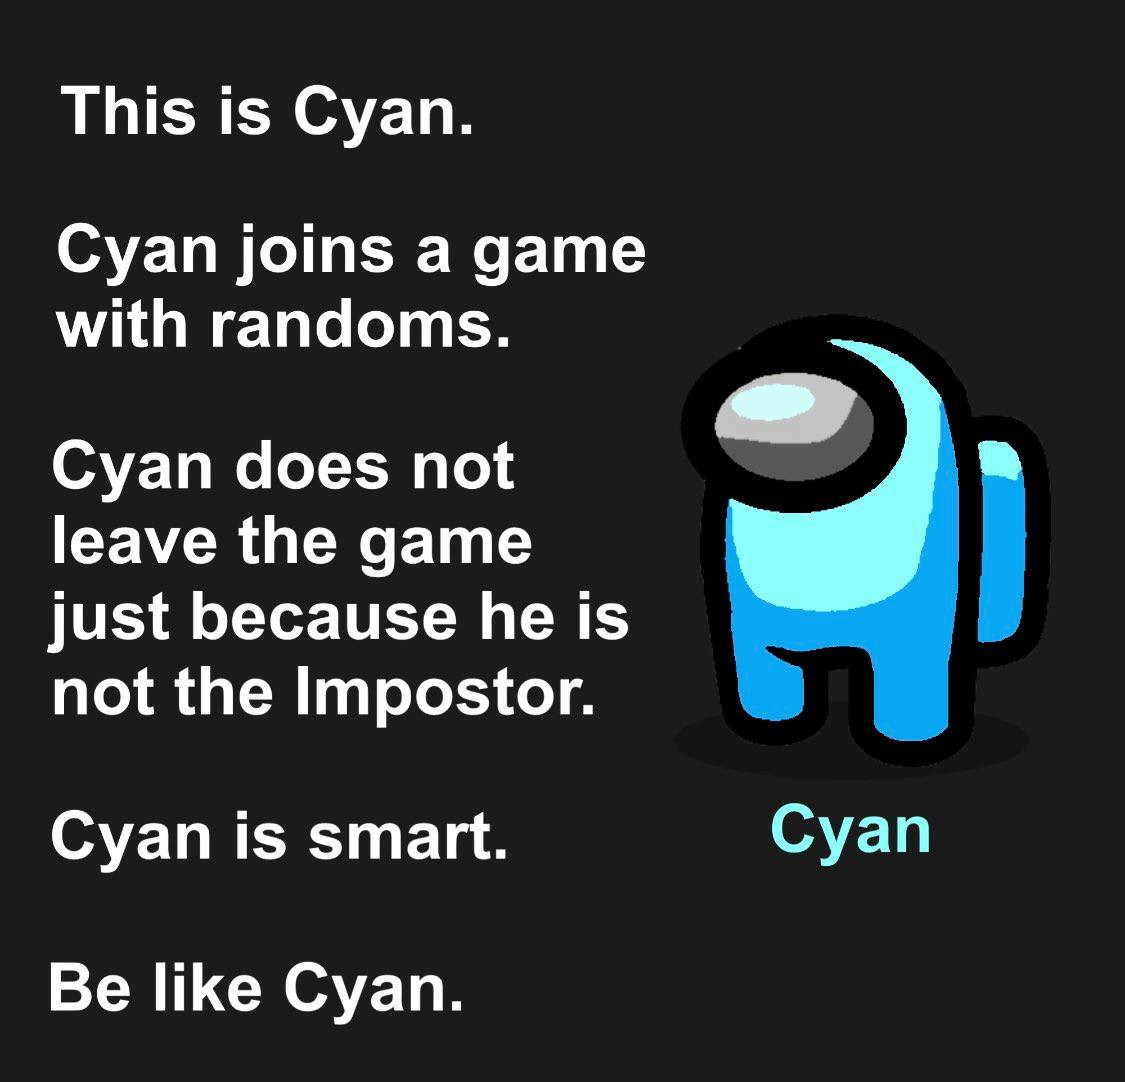 Cyan does not leave the game just because he is not the Impostor. Be like Cyan meme.